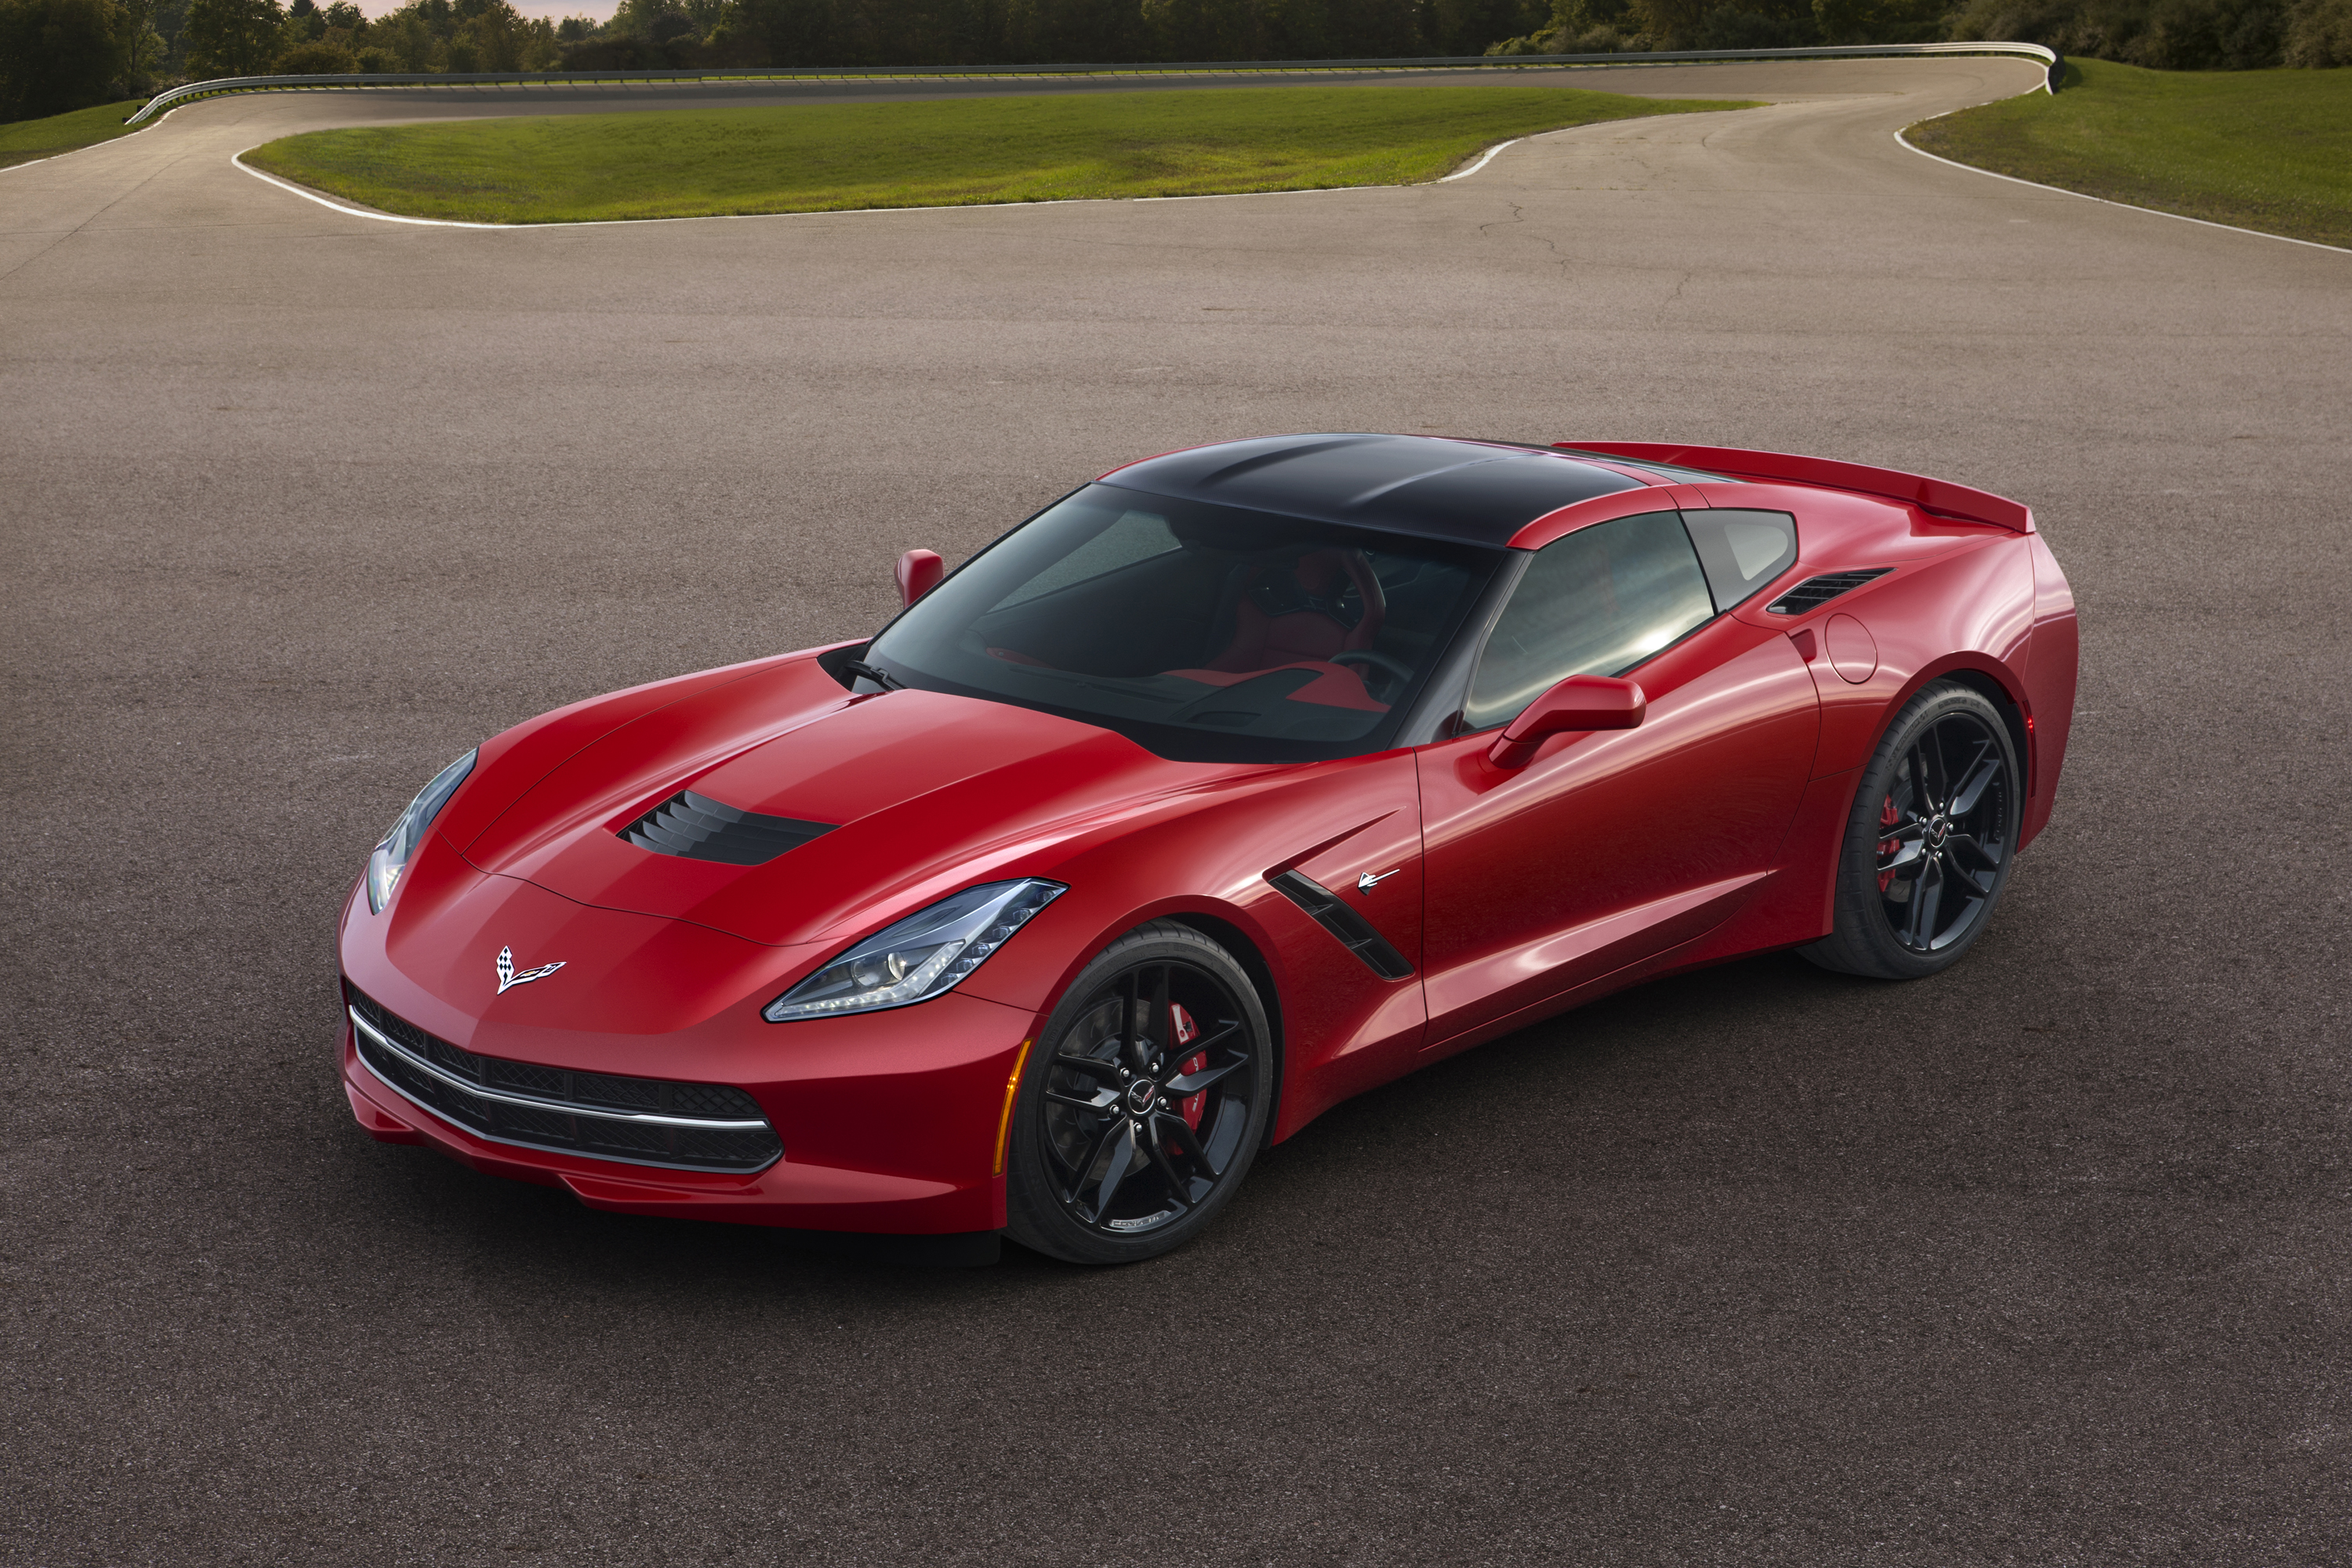 2014 Corvette Stingray Cranks Out 460 Horsepower